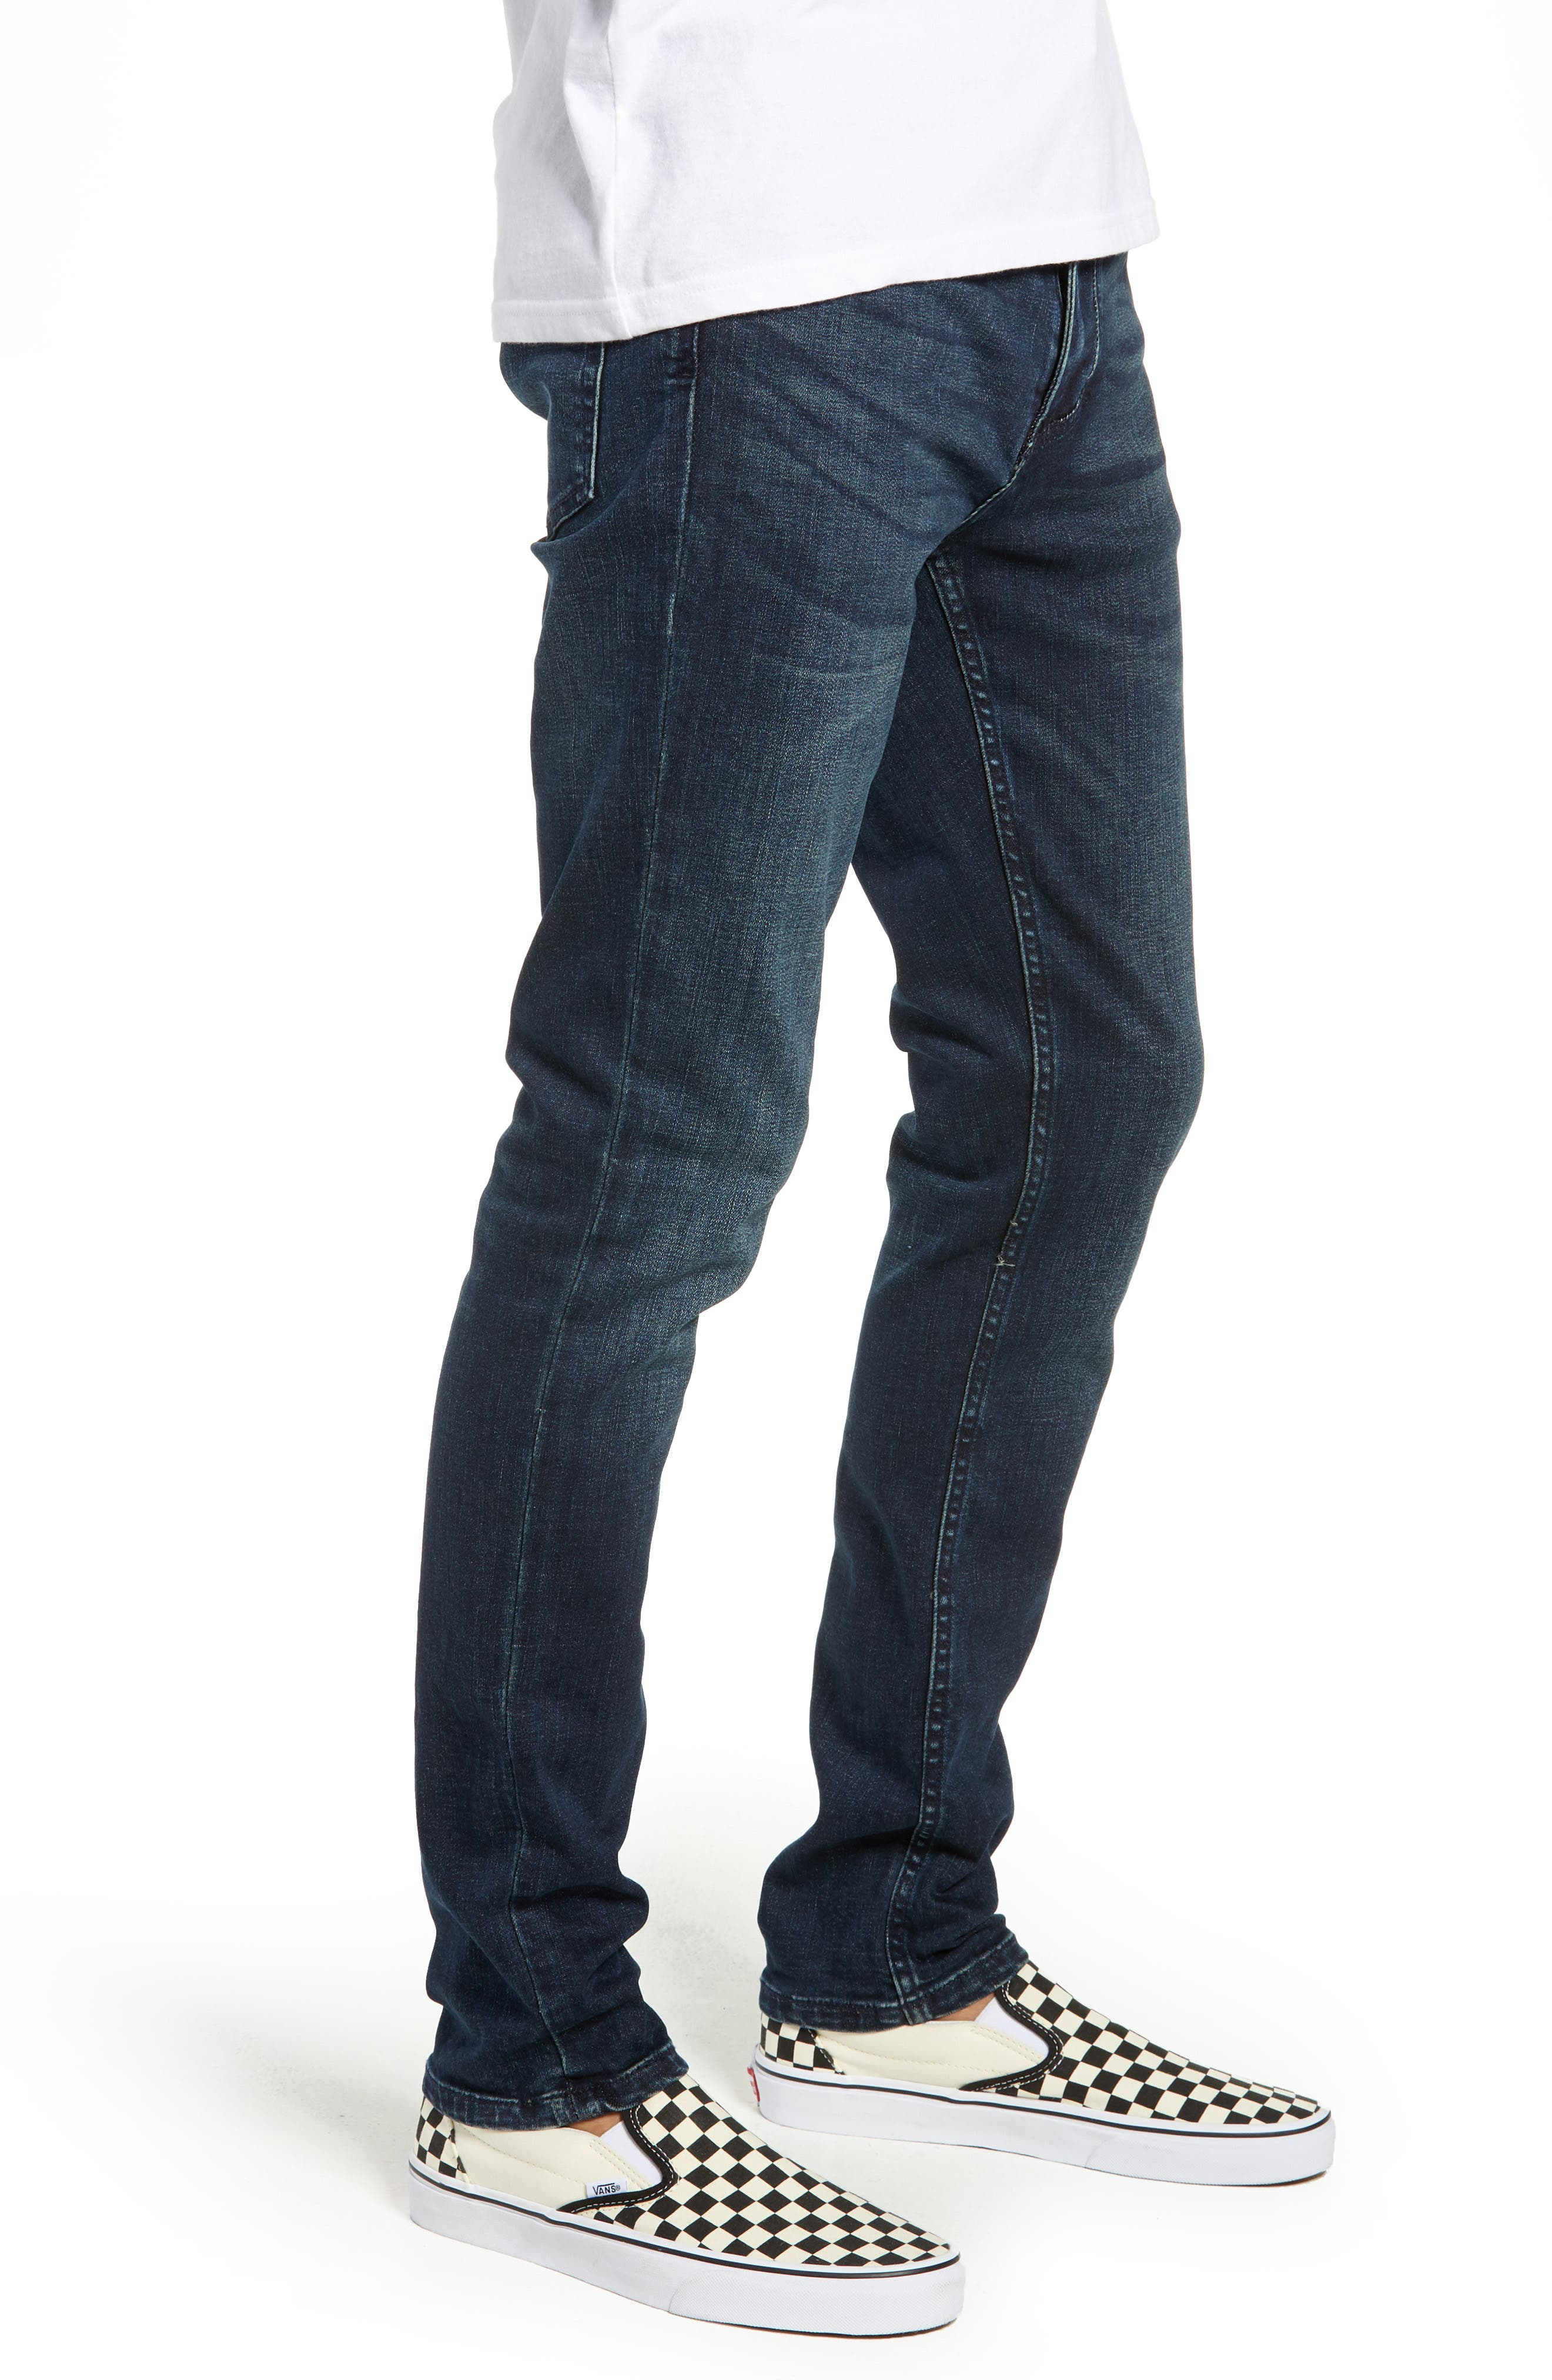 Horatio Skinny Fit Jeans,                             Alternate thumbnail 3, color,                             425